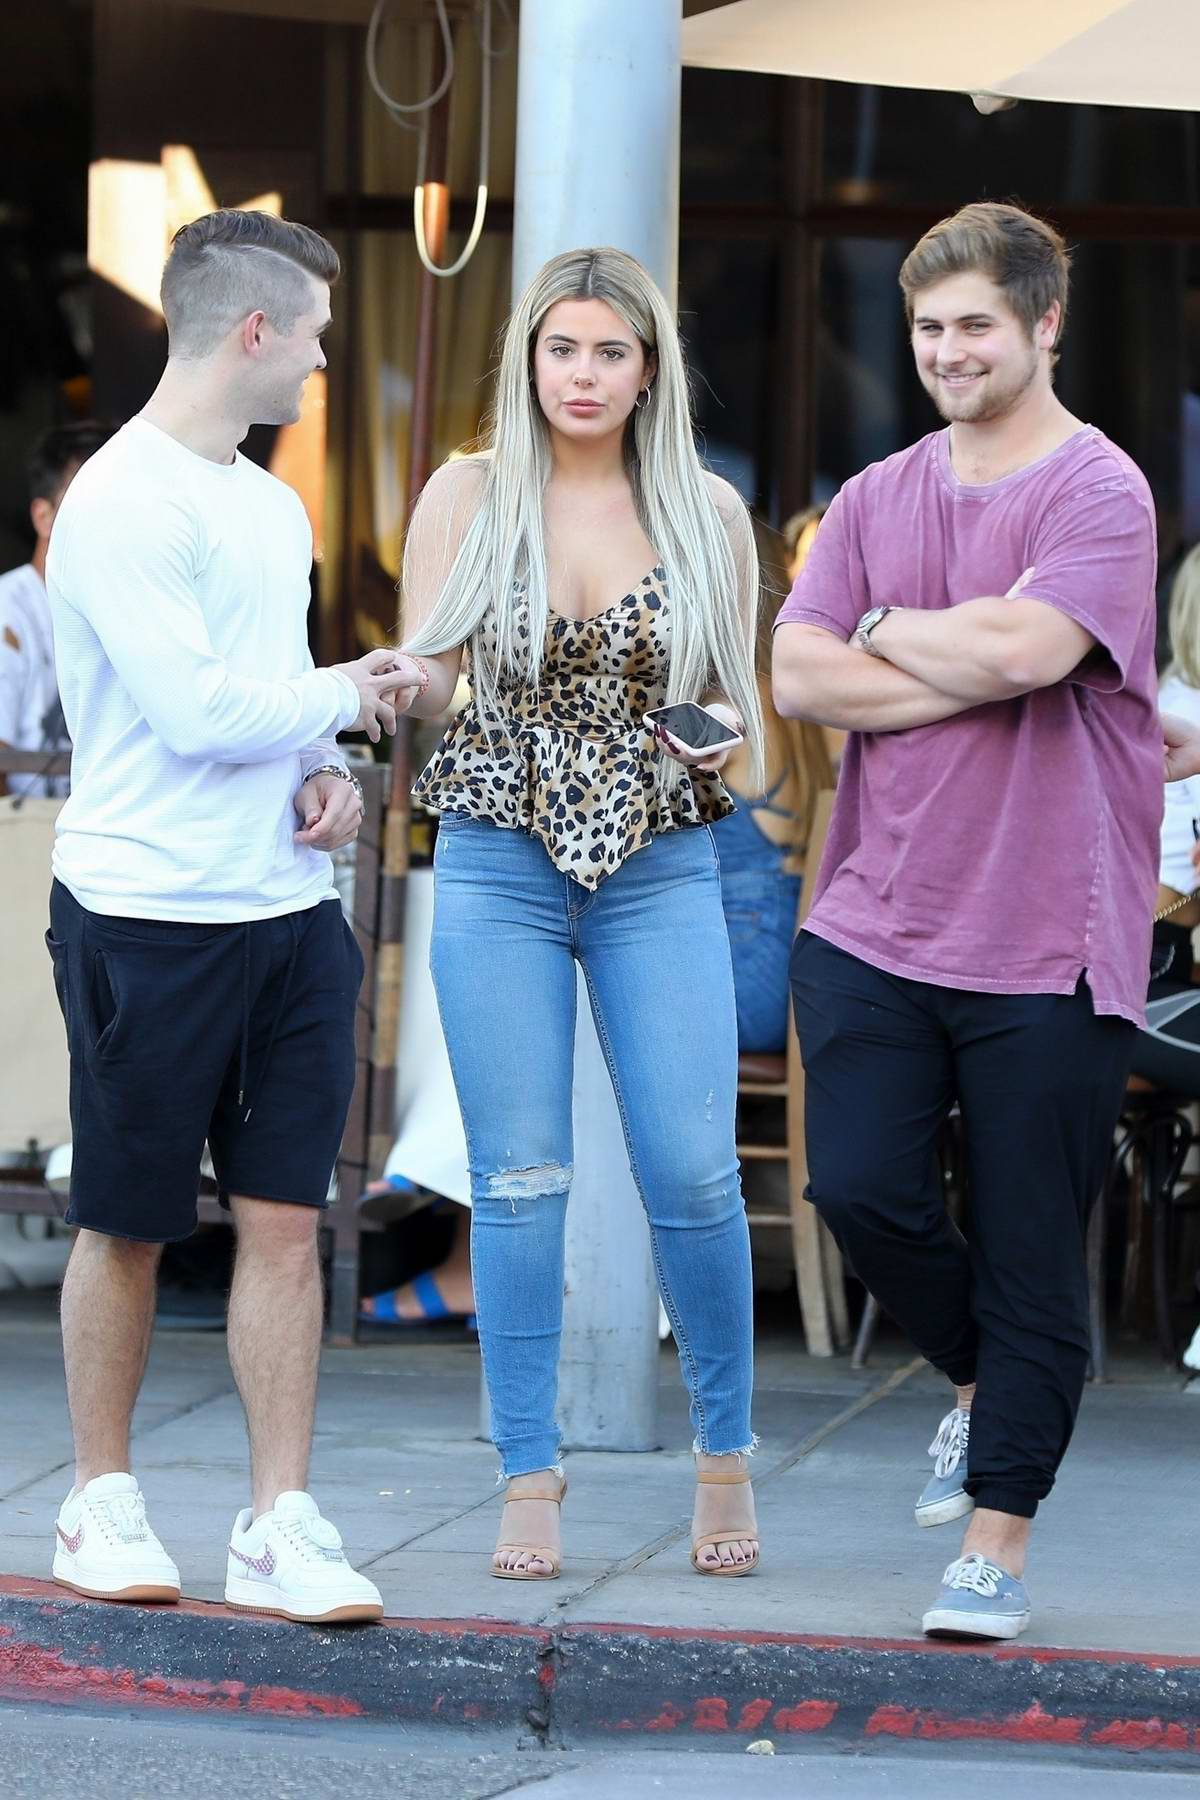 Brielle Biermann goes shopping with her friends after enjoying lunch with her friends at Il Pastaio, Beverly Hills, Los Angeles